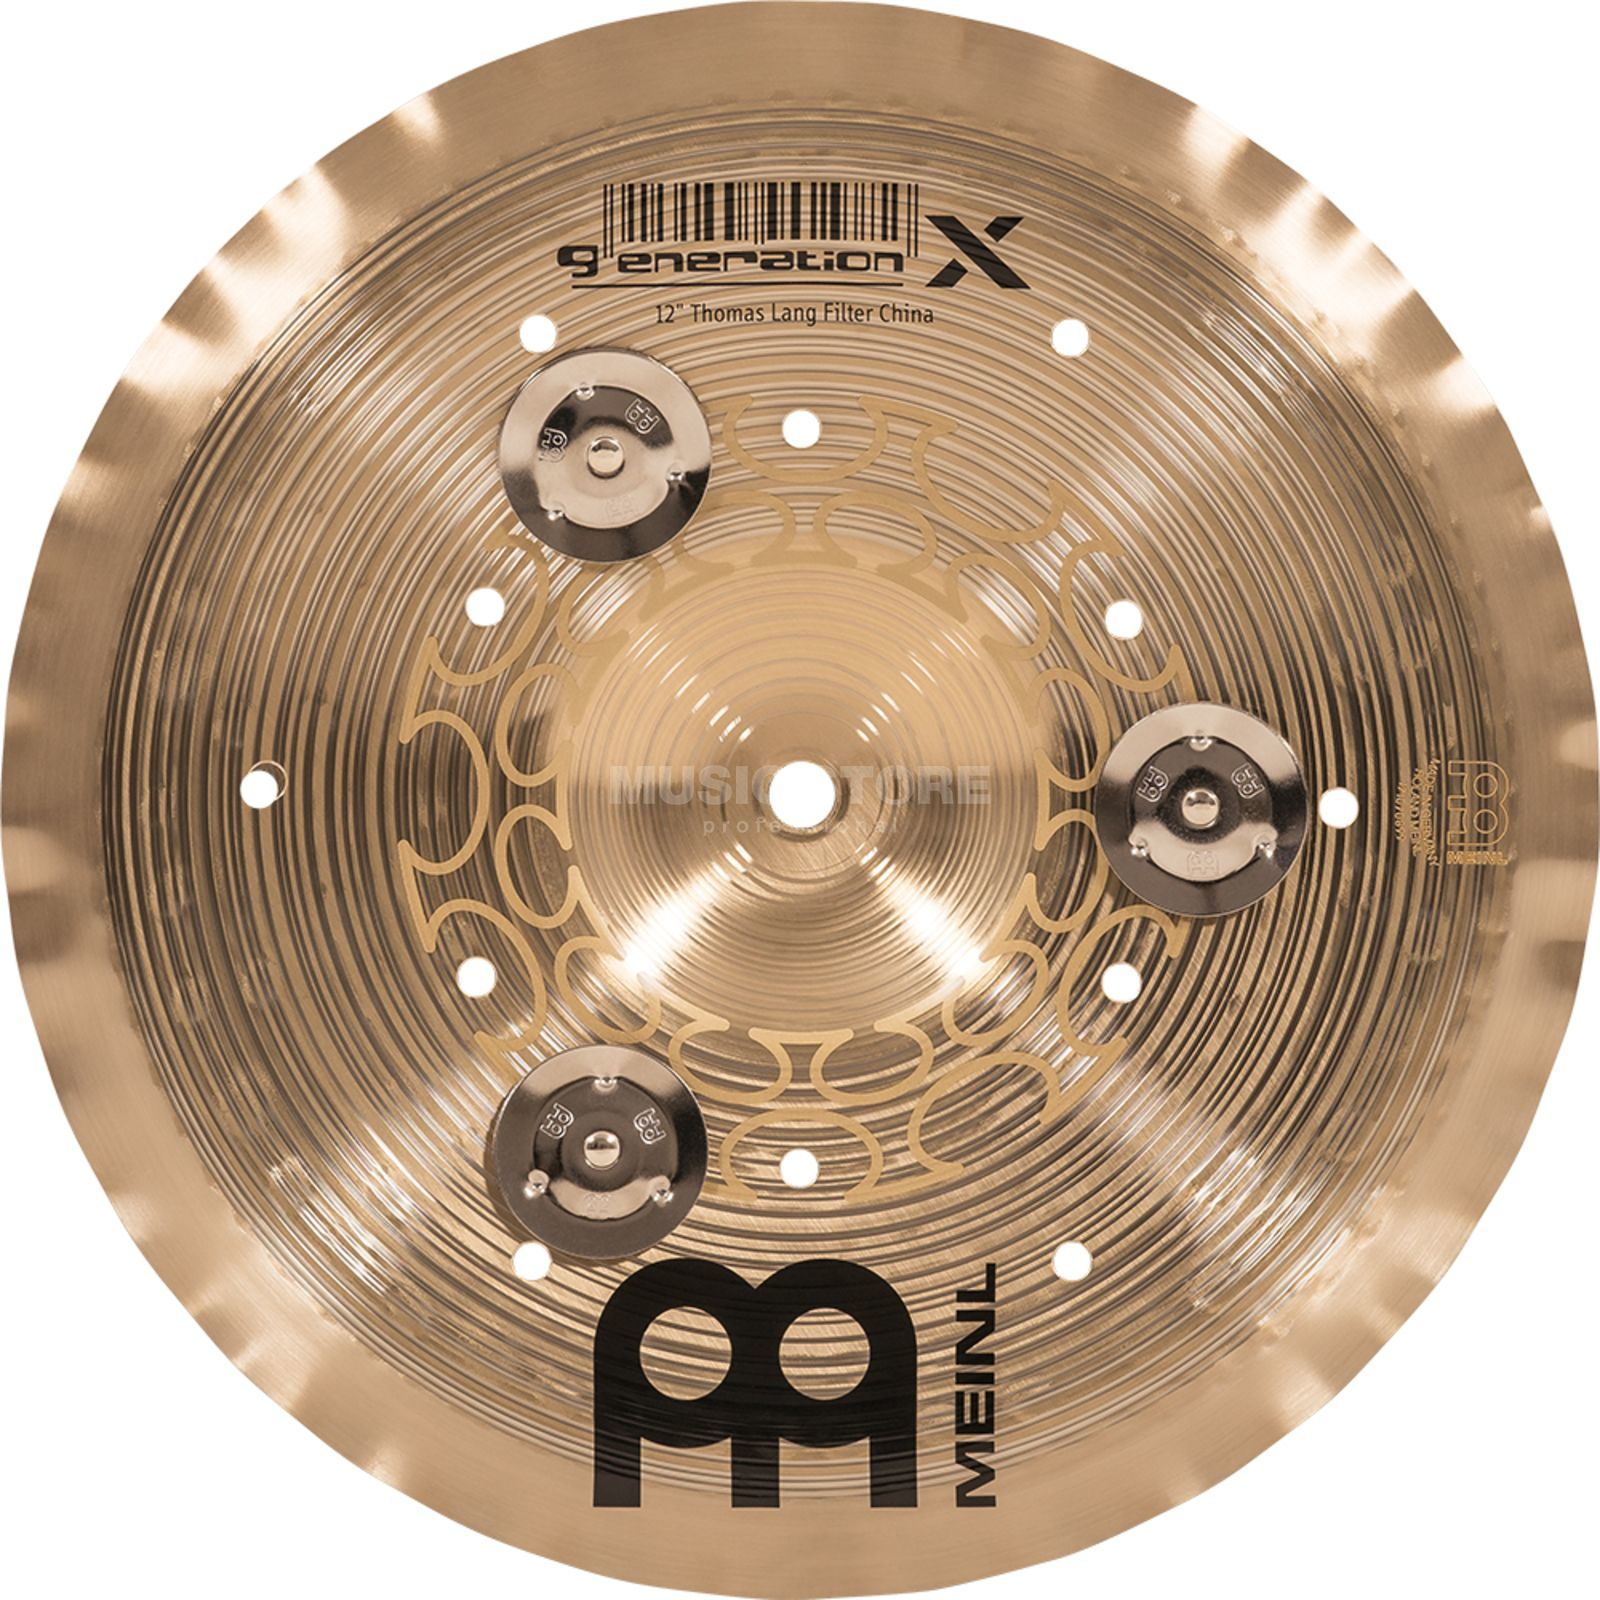 "Meinl Generation X Filter China 12"" GX-12FCH-J, with Jingles Product Image"